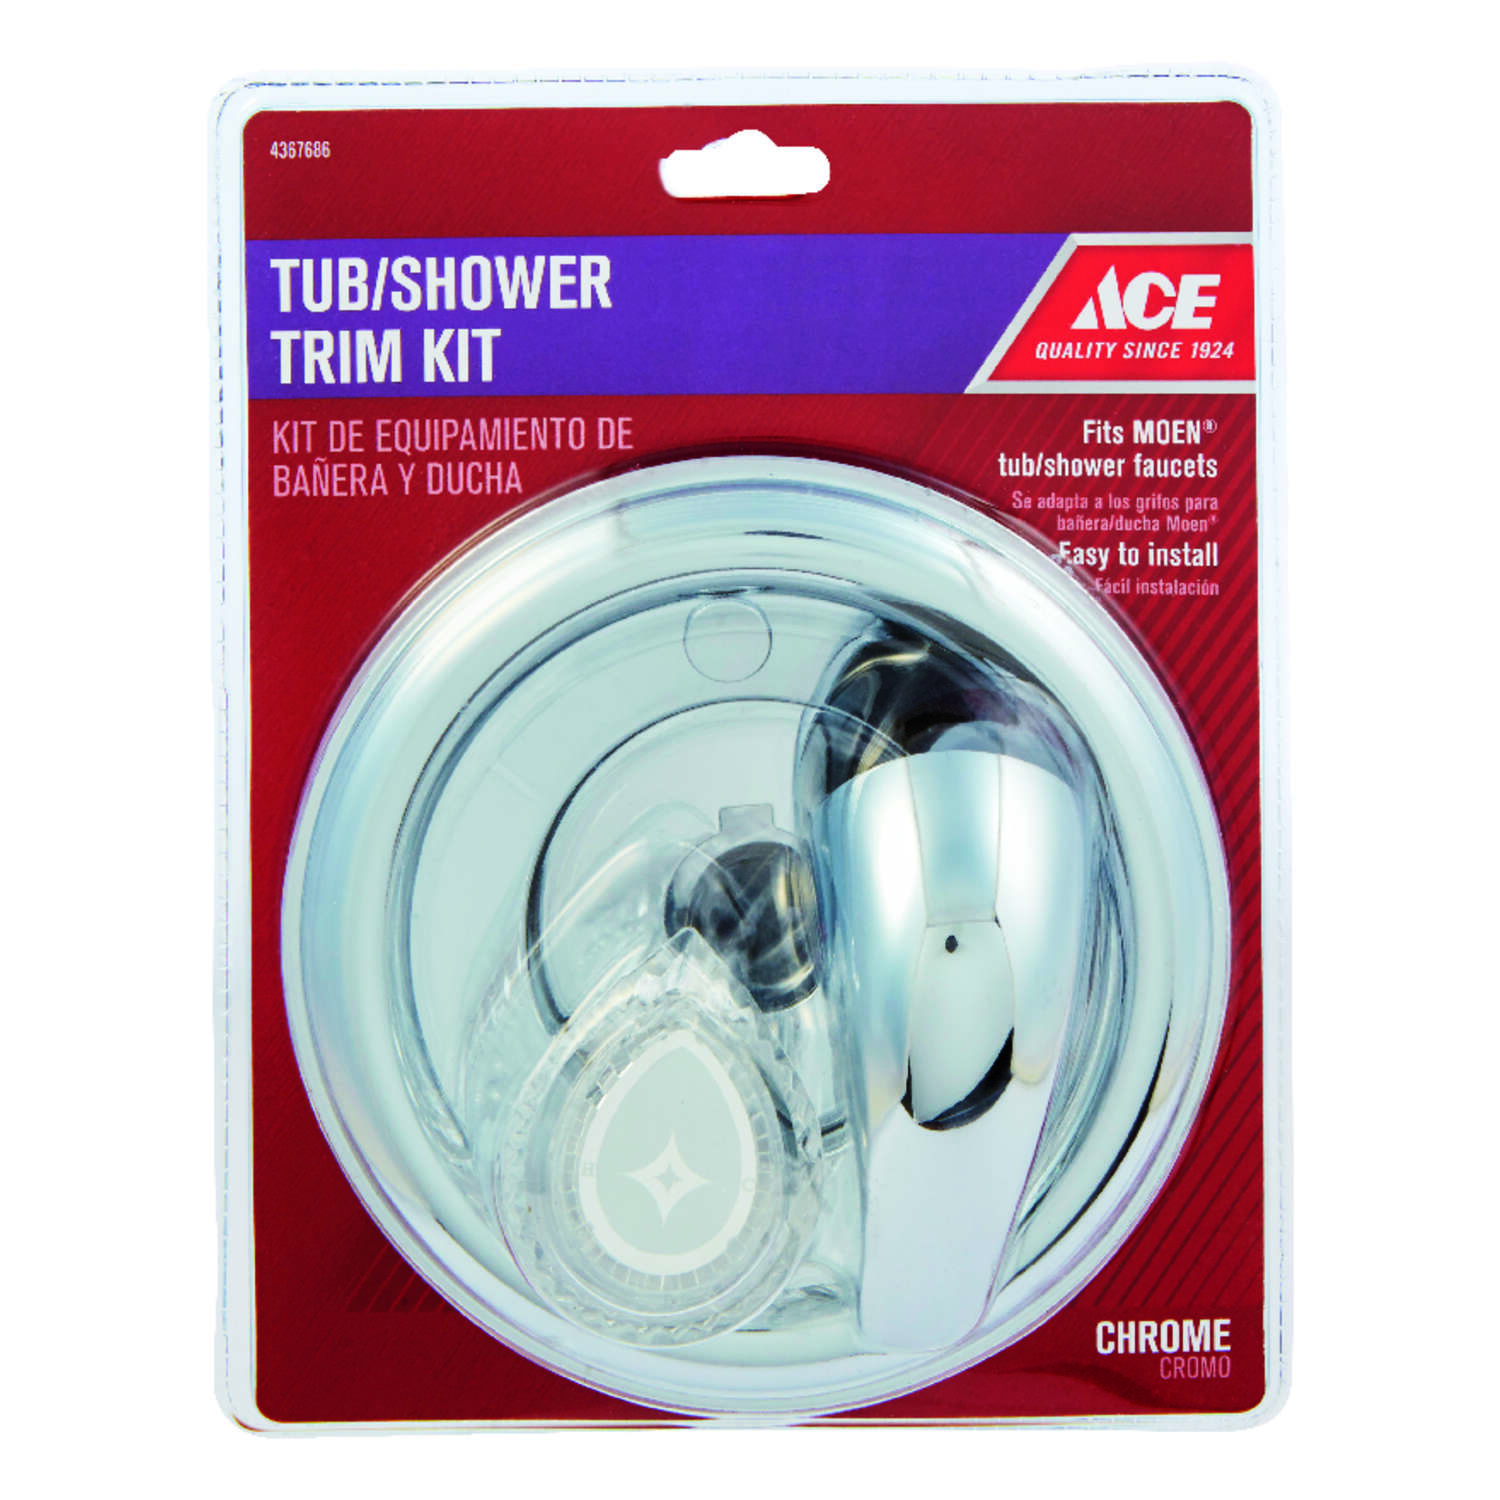 Ace Chrome Tub and Shower Trim Kit